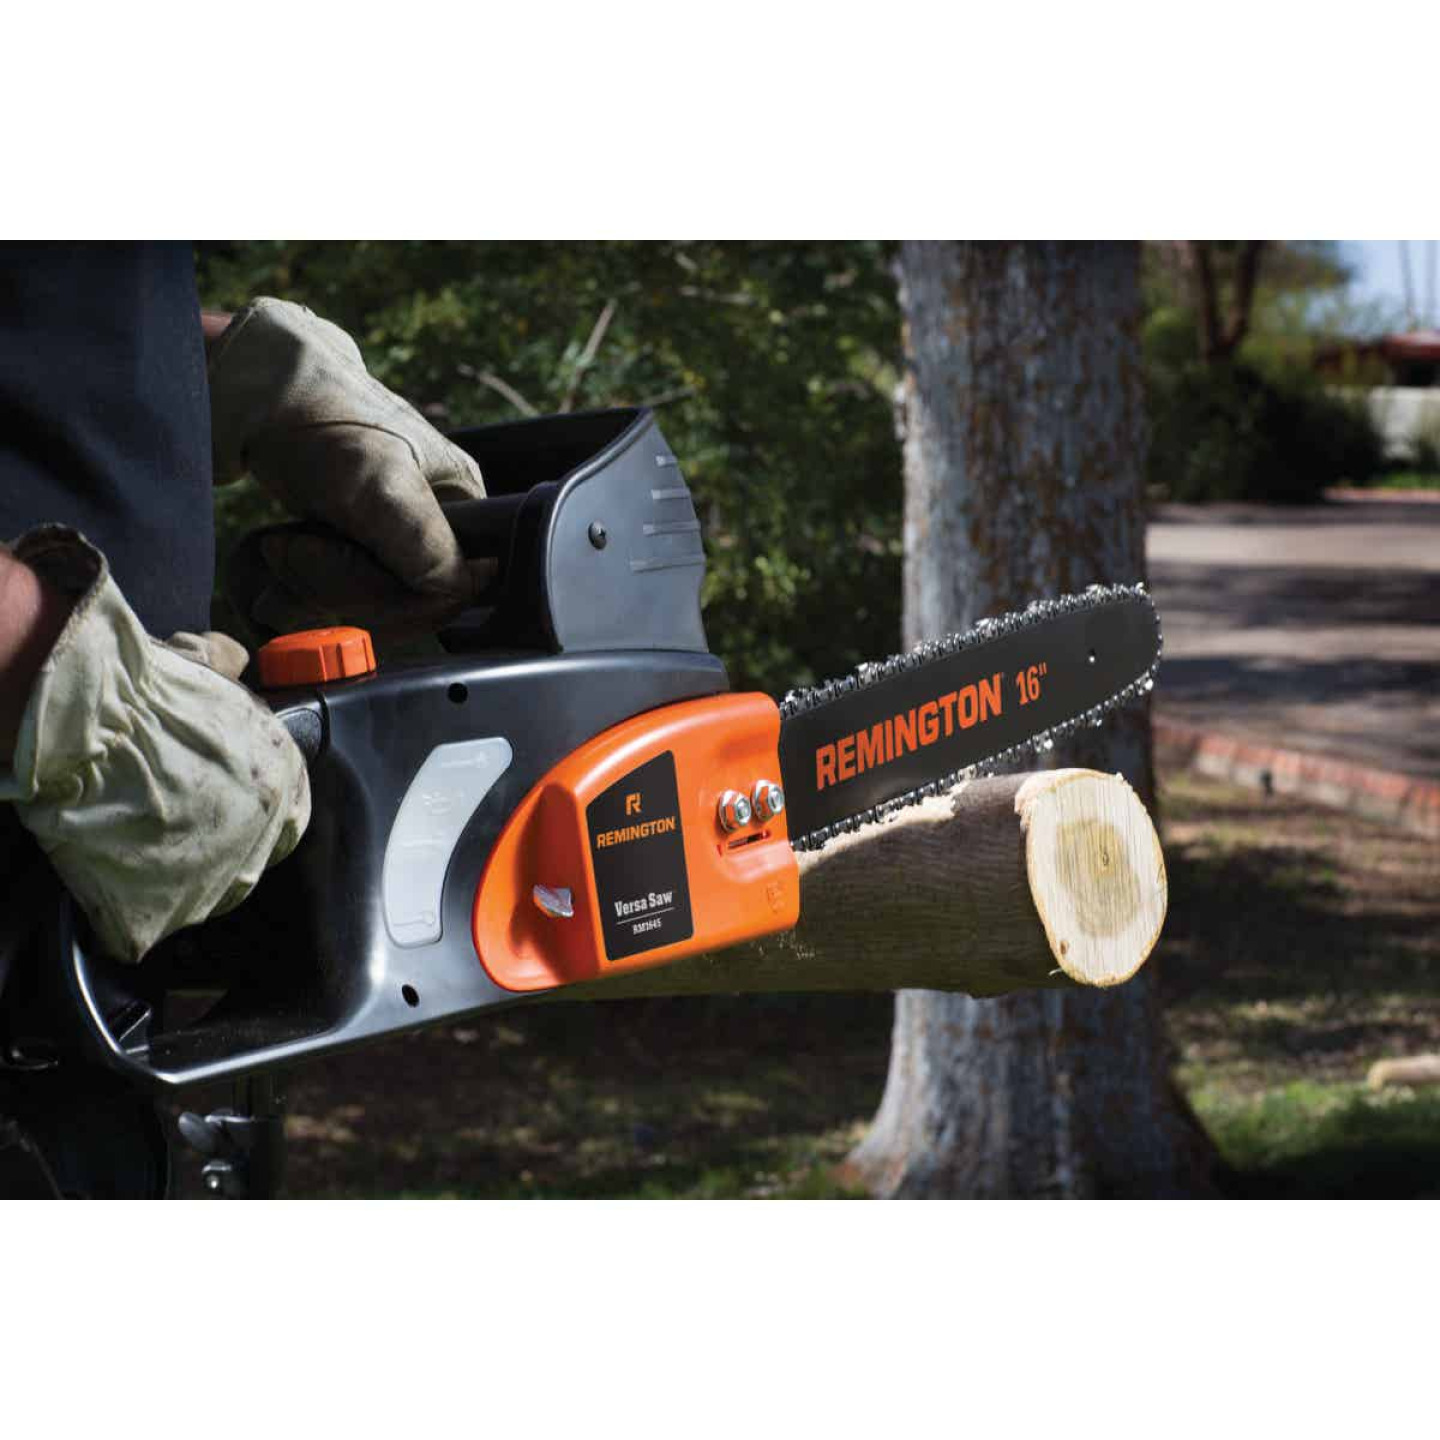 Remington Versa Saw RM1645 16 In. 12A Electric Chainsaw Image 2